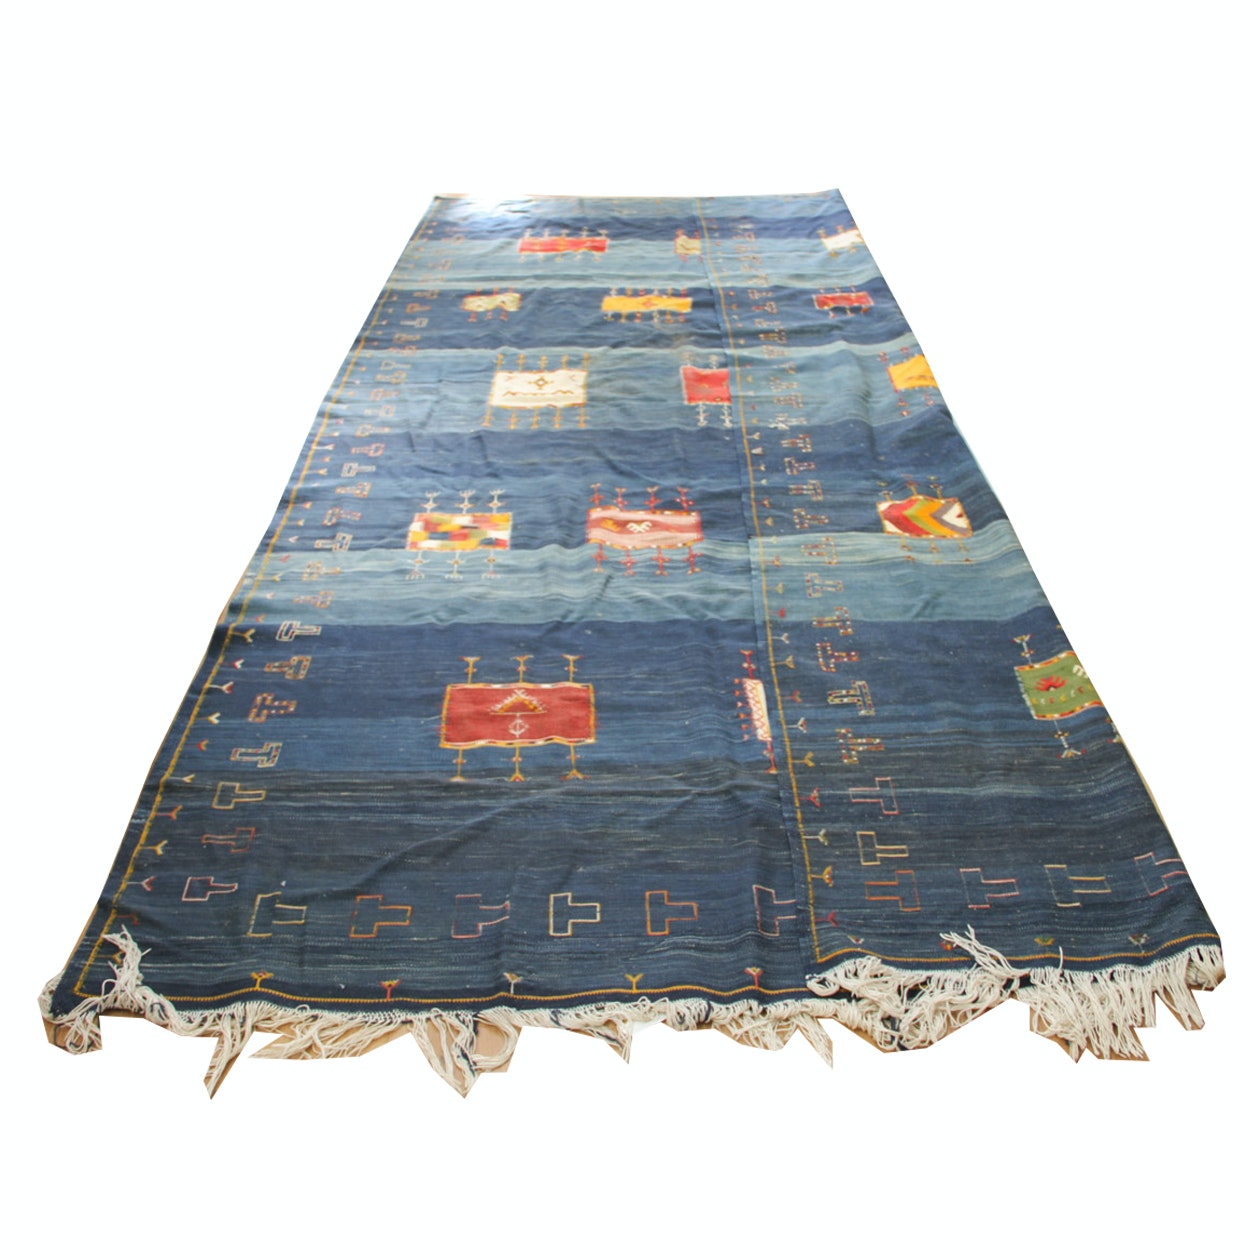 Handwoven Nomadic Anatolian or Turkish Area Rug